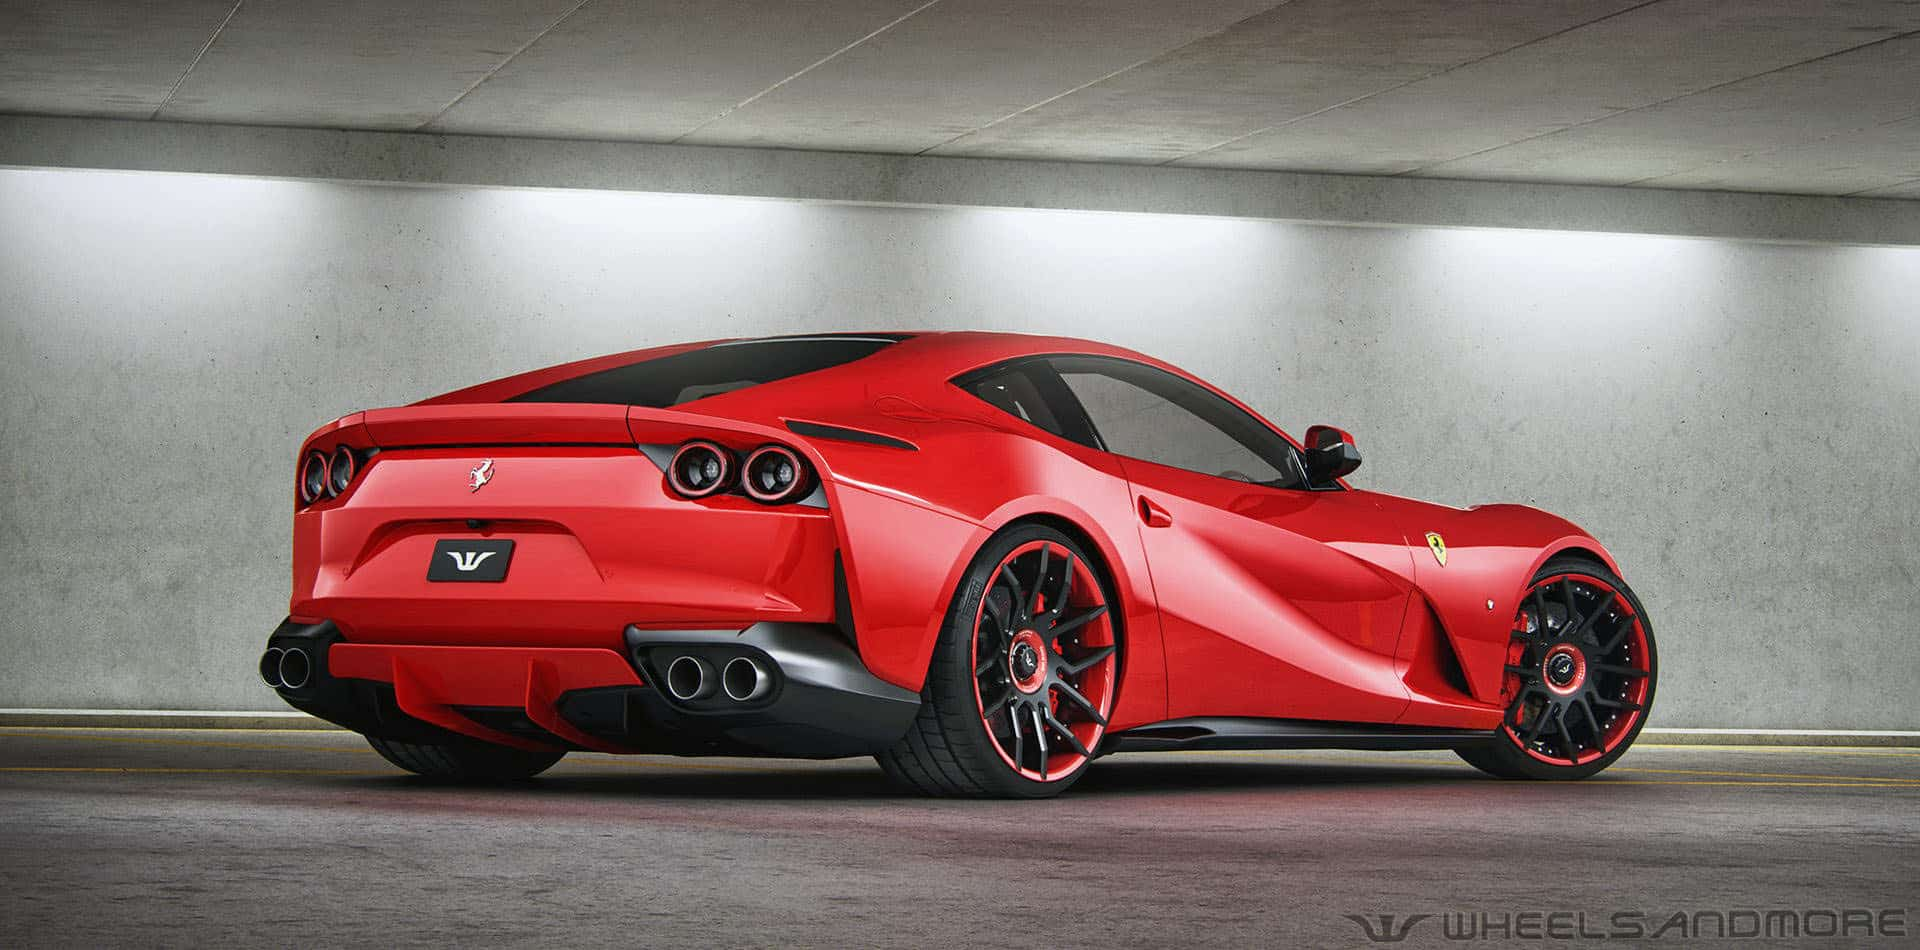 Ferrari 812 Superfast Tuning And Forged Wheels Wheelsandmore Wheelsandmore Tuning